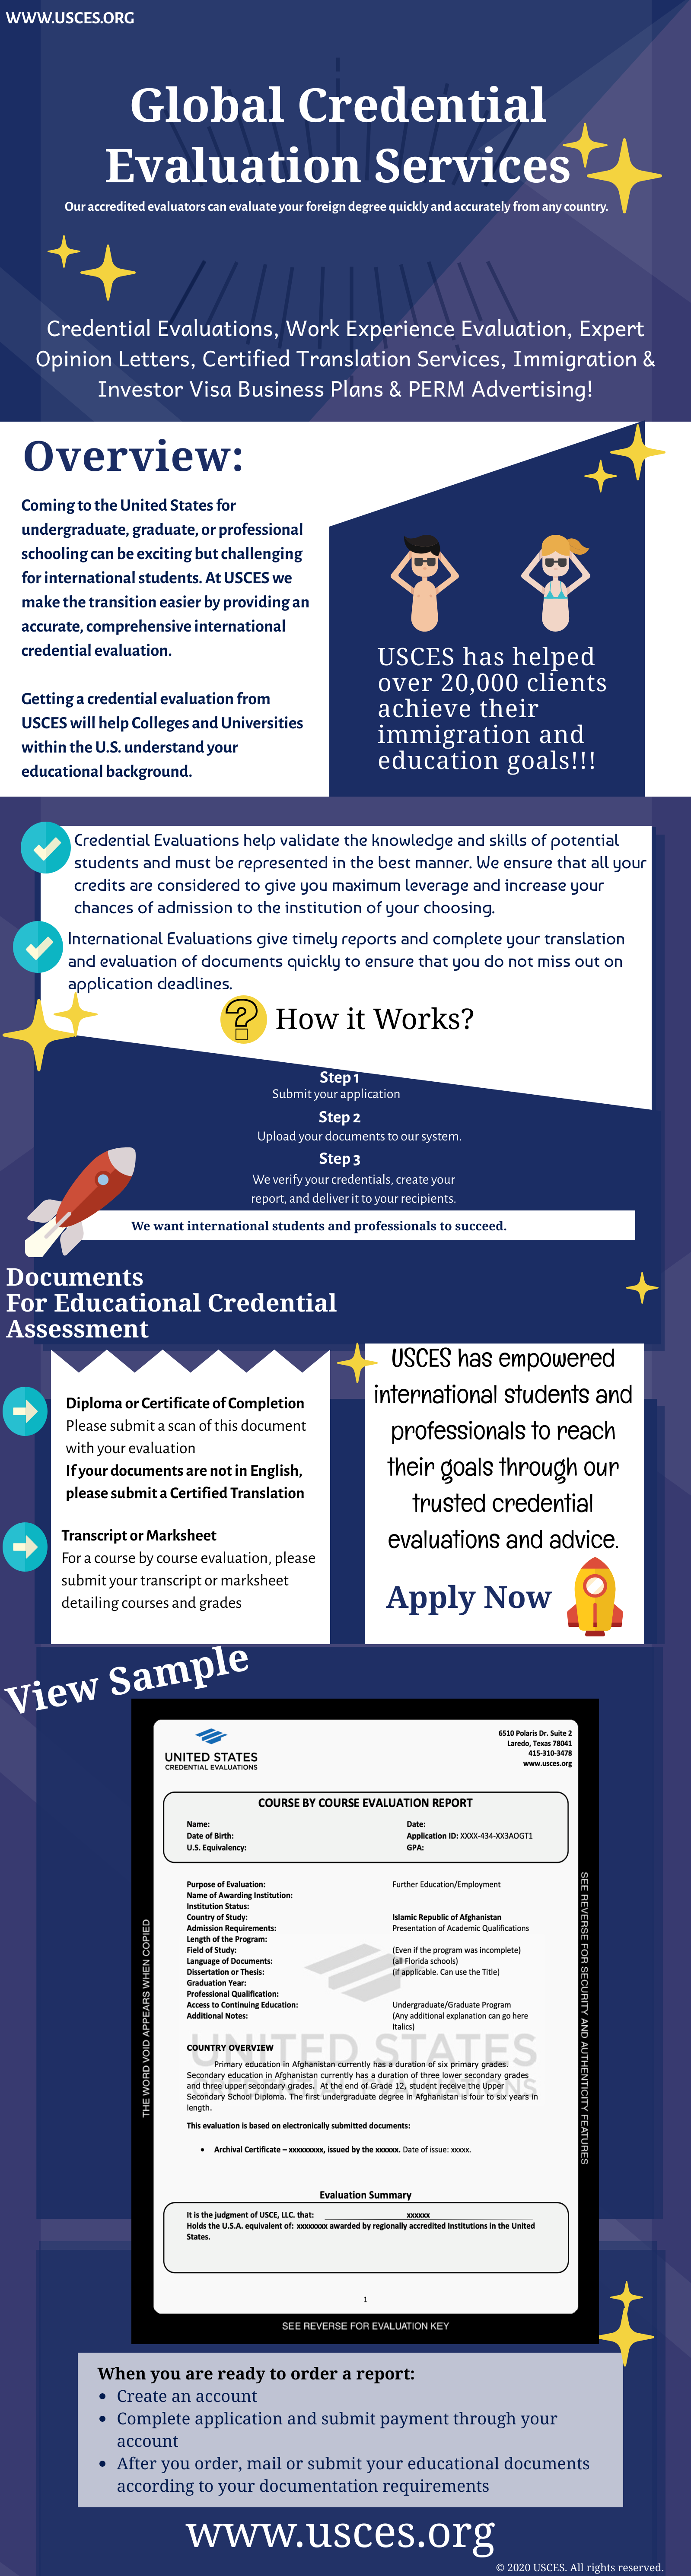 Global Credential Evaluation Services Infographics Usces Work Experience Business Planning Education